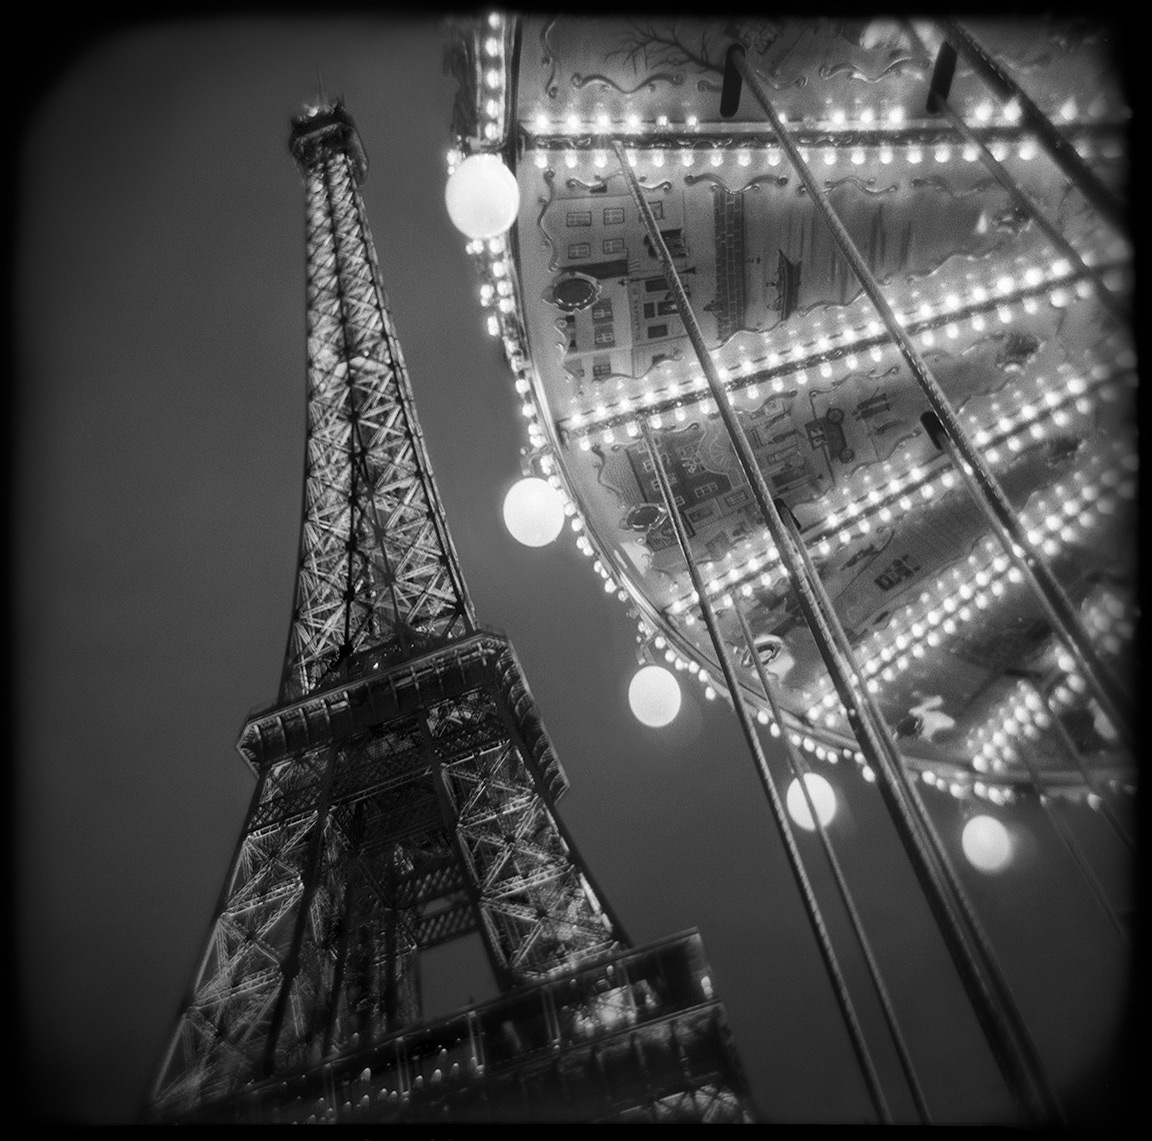 01-New Website-022113-EIFFEL-TOWER-w-CAROUSEL-PagedToPrint-RobinRice-021313.jpg